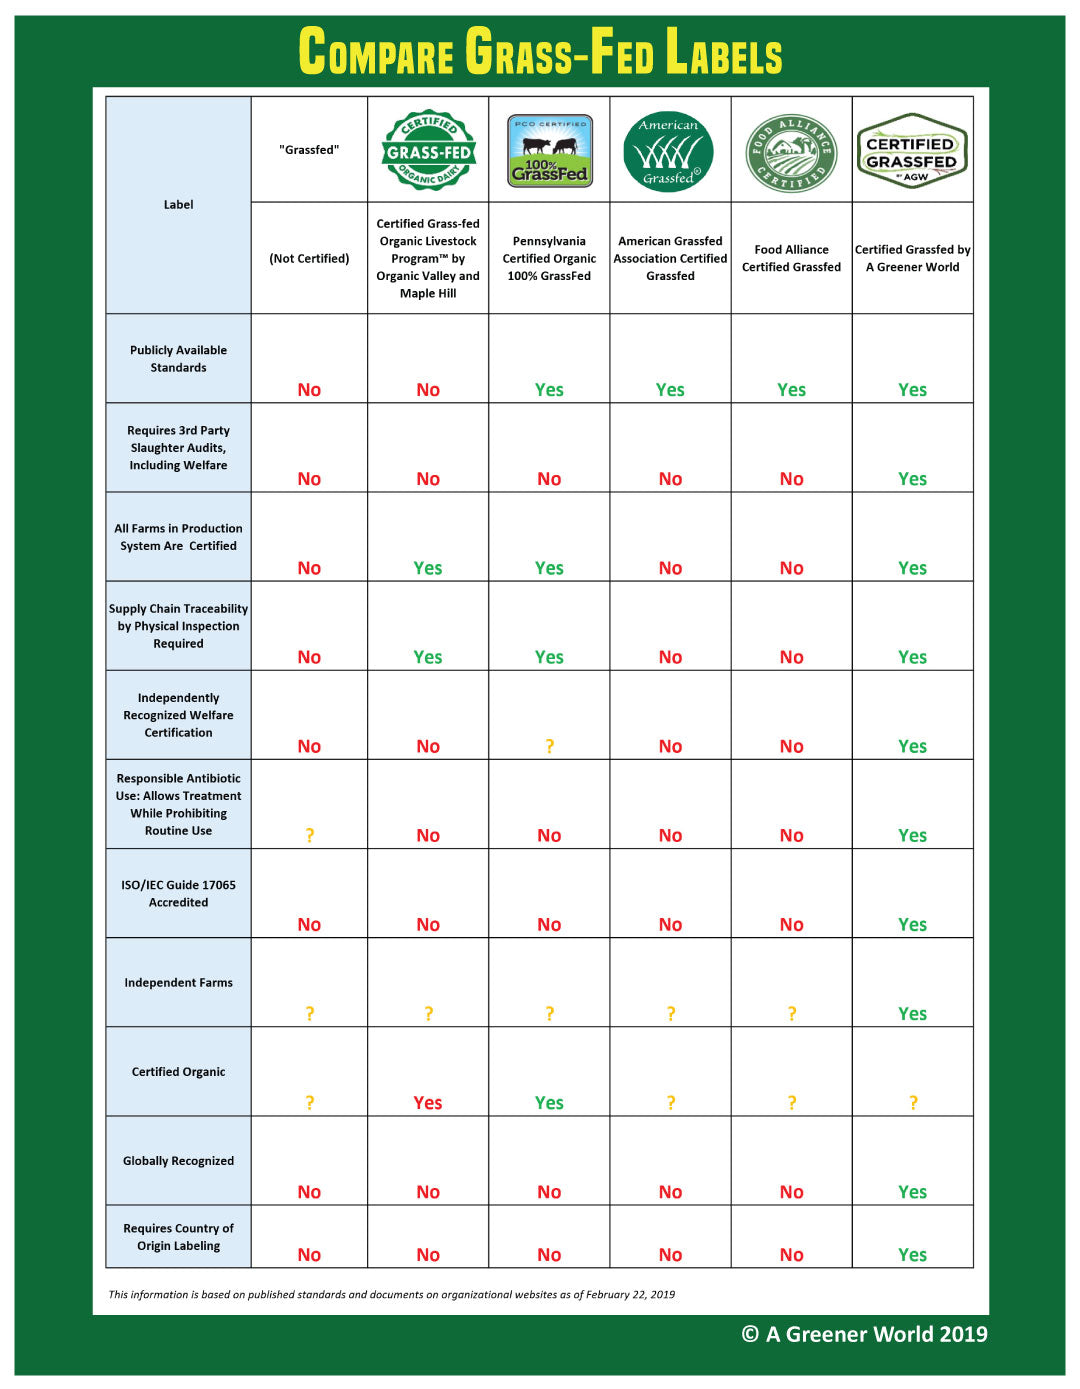 Grass-Fed Label Comparison Chart - Certified Grassfed - AGN Roots Grassfed Whey